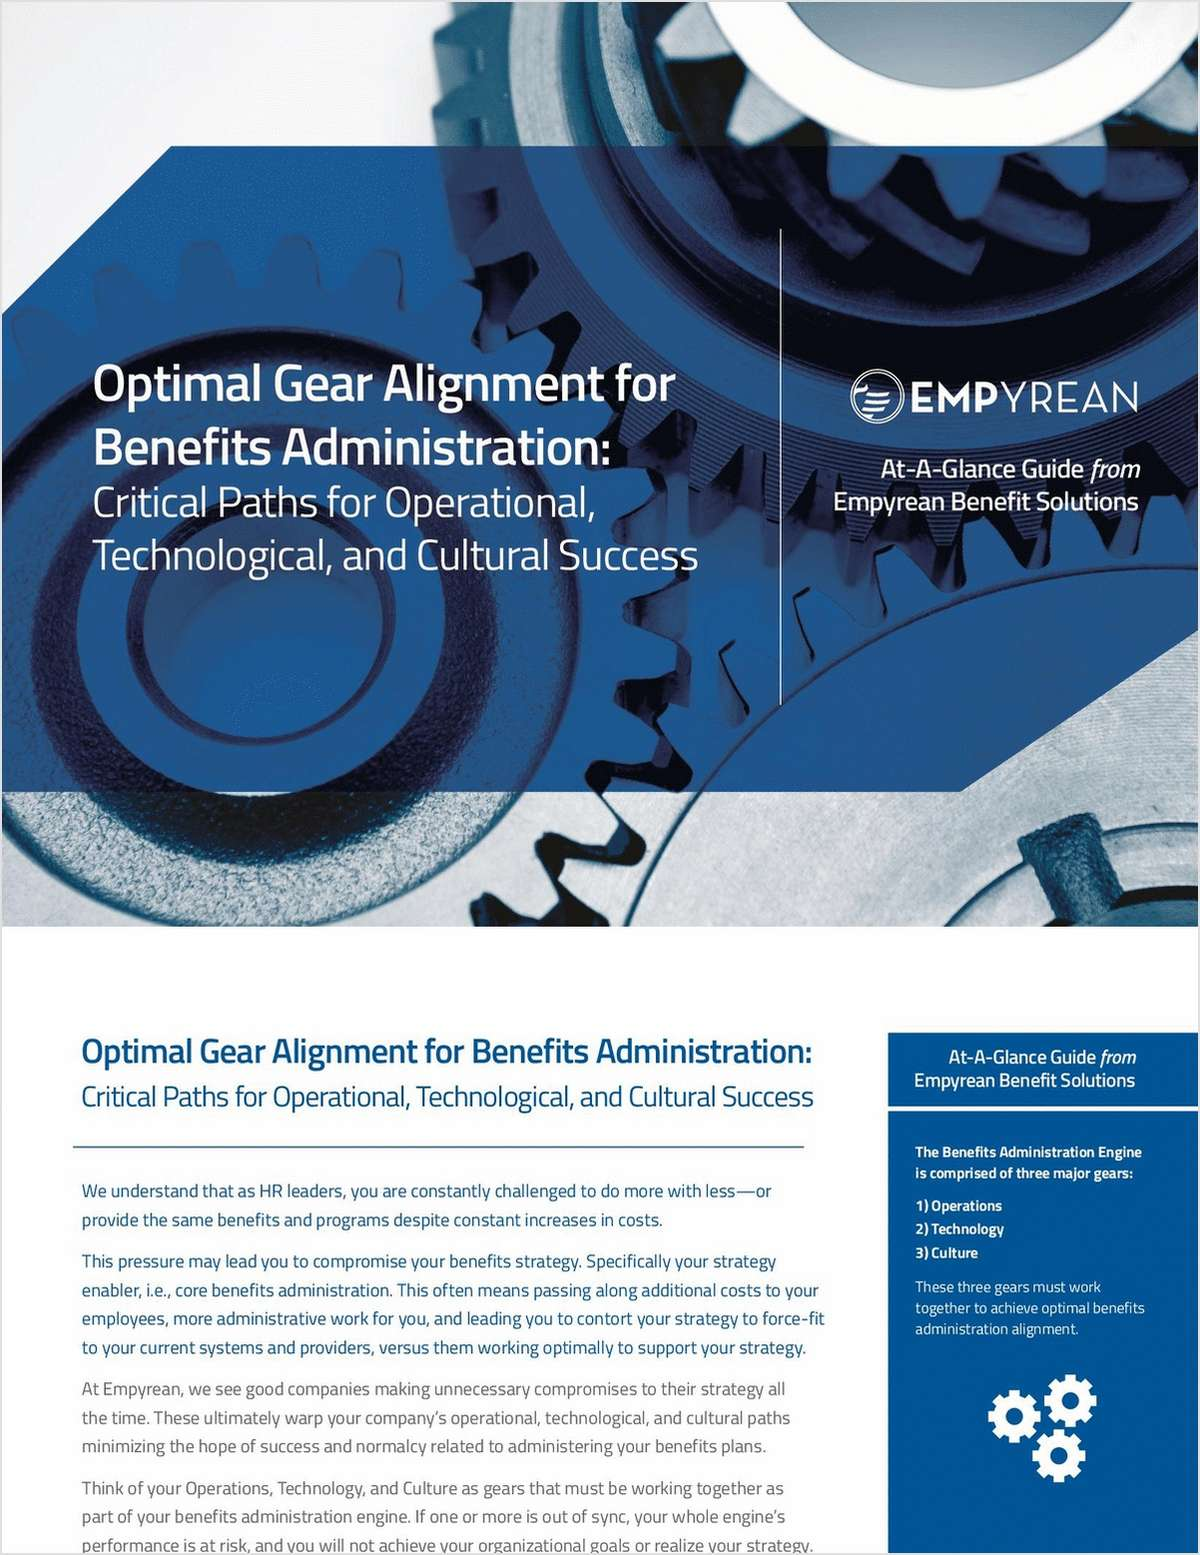 Optimal Gear Alignment for Benefits Administration: Critical Paths for Operational, Technological, and Cultural Success